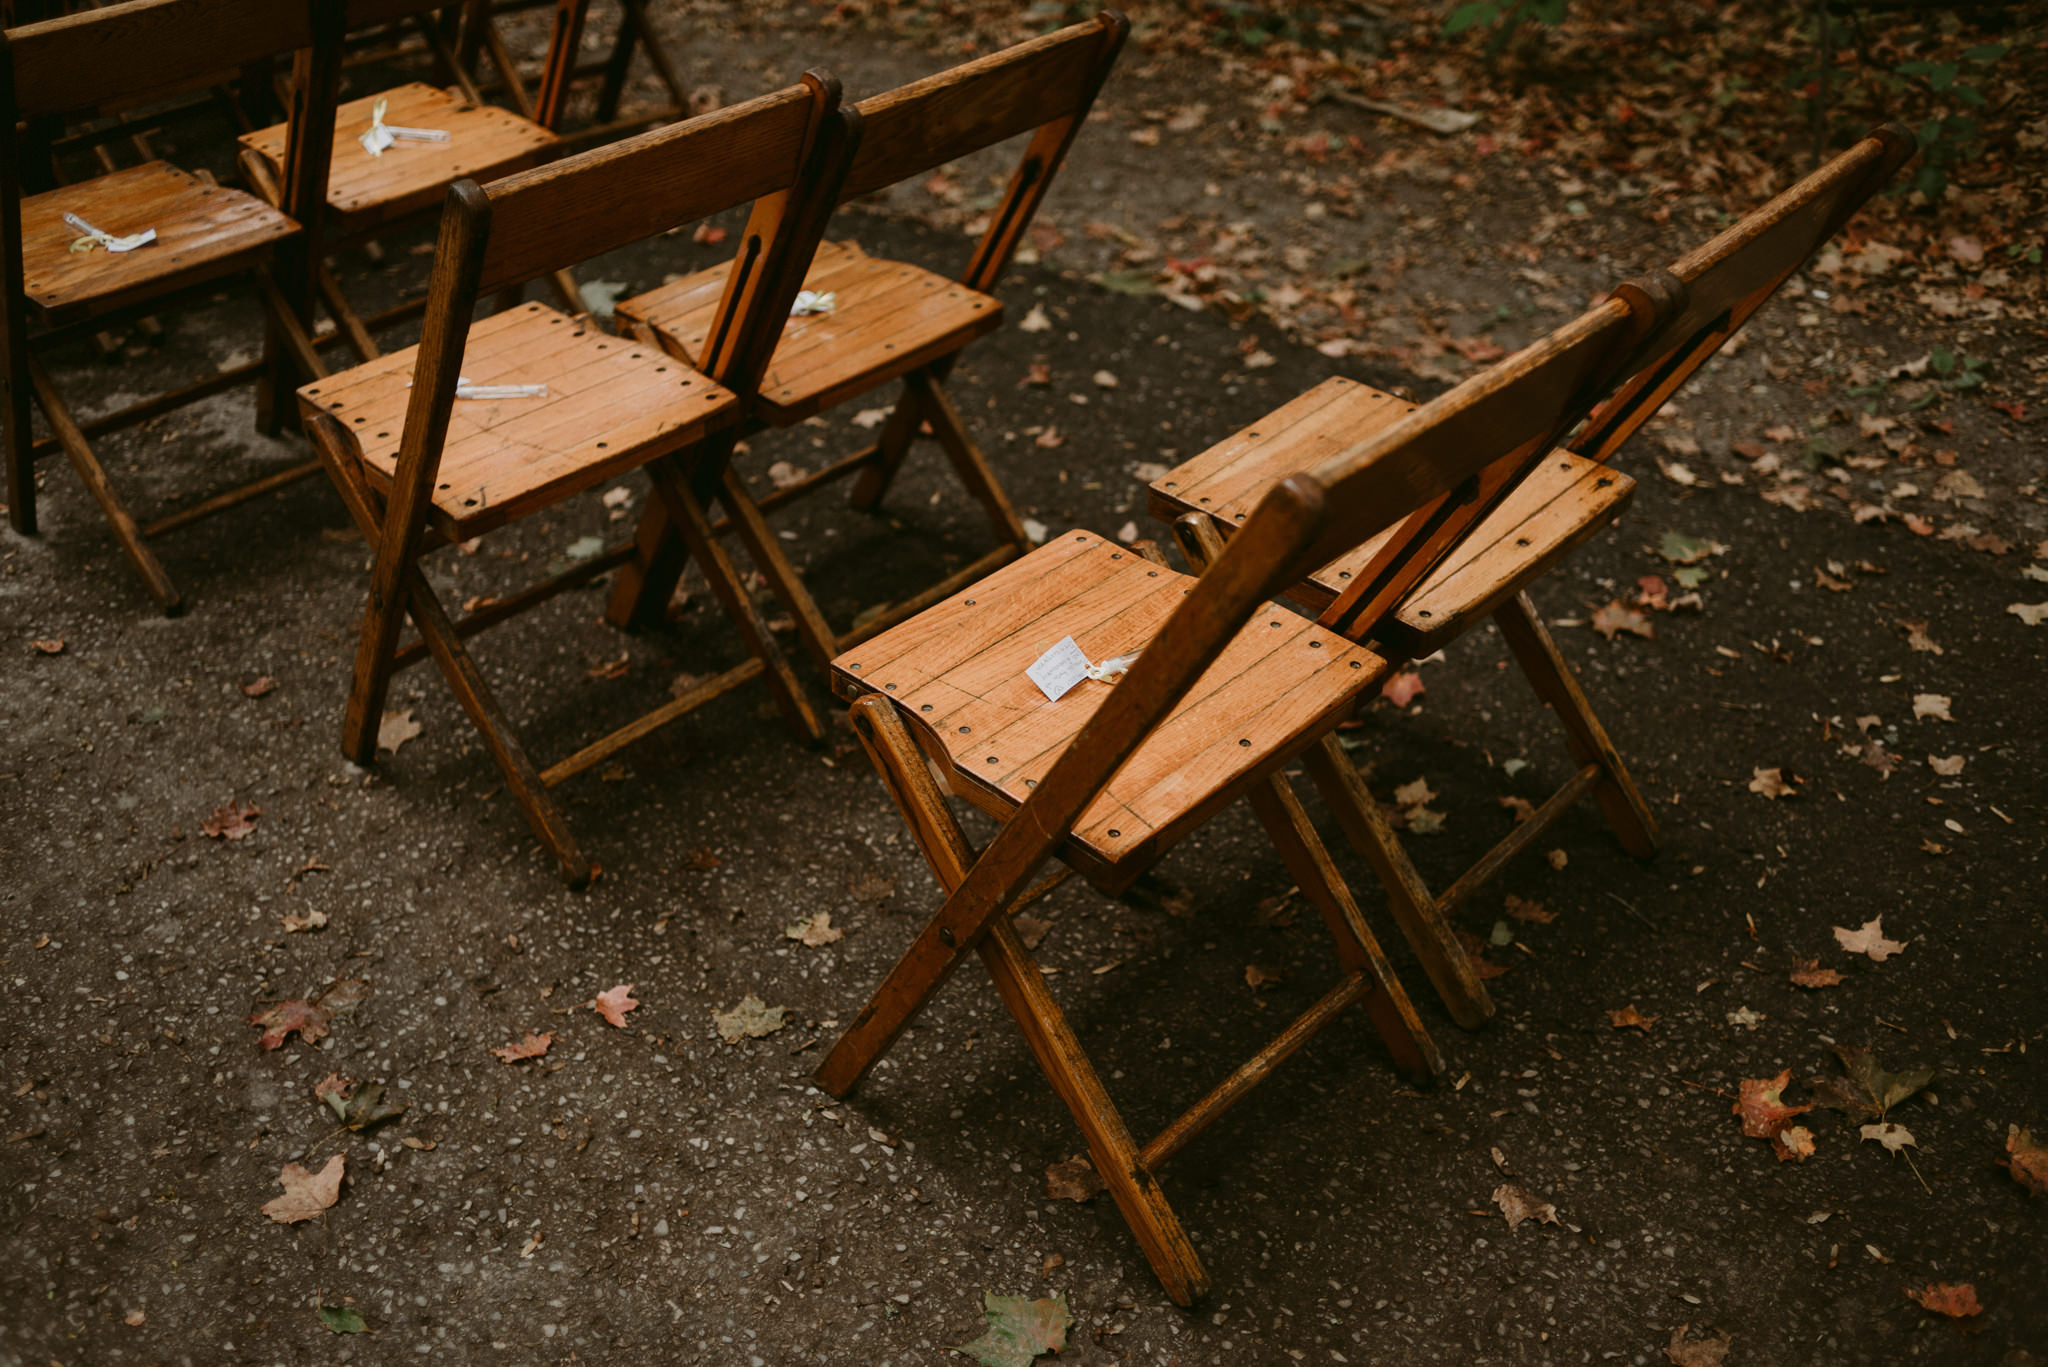 Wooden chairs with fall colours and leafs on ground